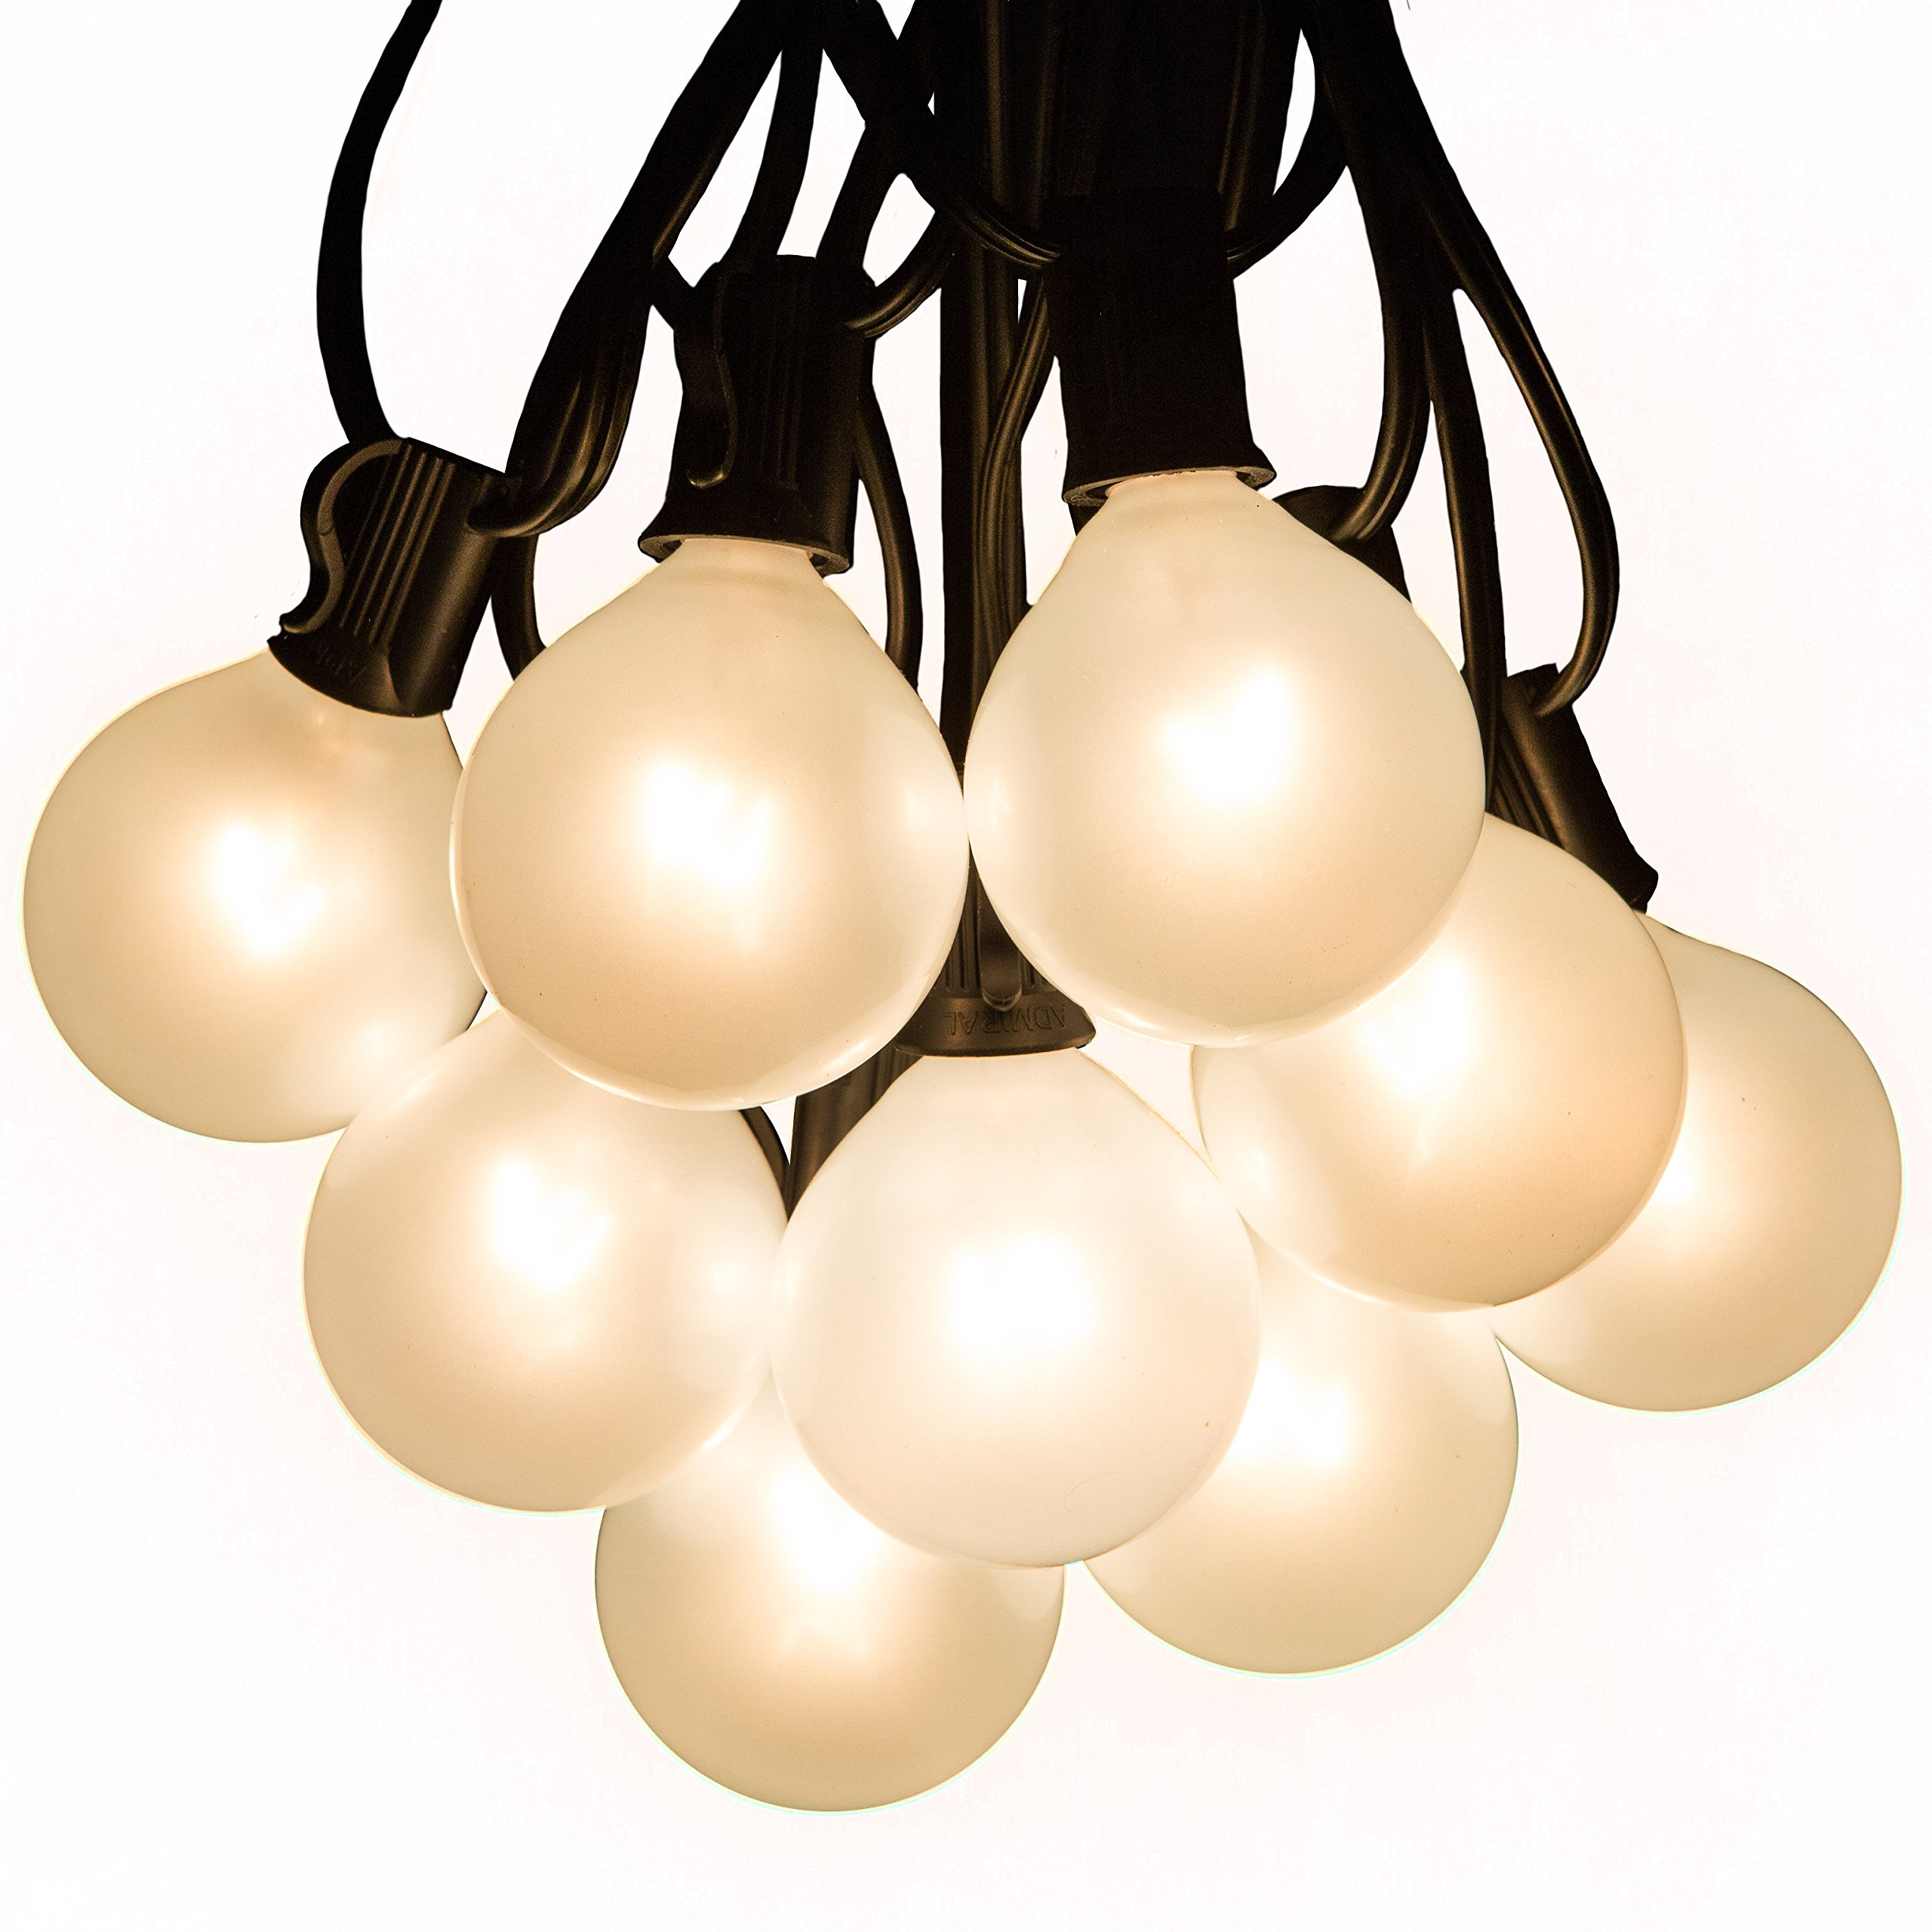 100 Foot Outdoor Globe Patio String Lights - Set of 100 G50 White Pearl 2 Inch Bulbs with Black Cord